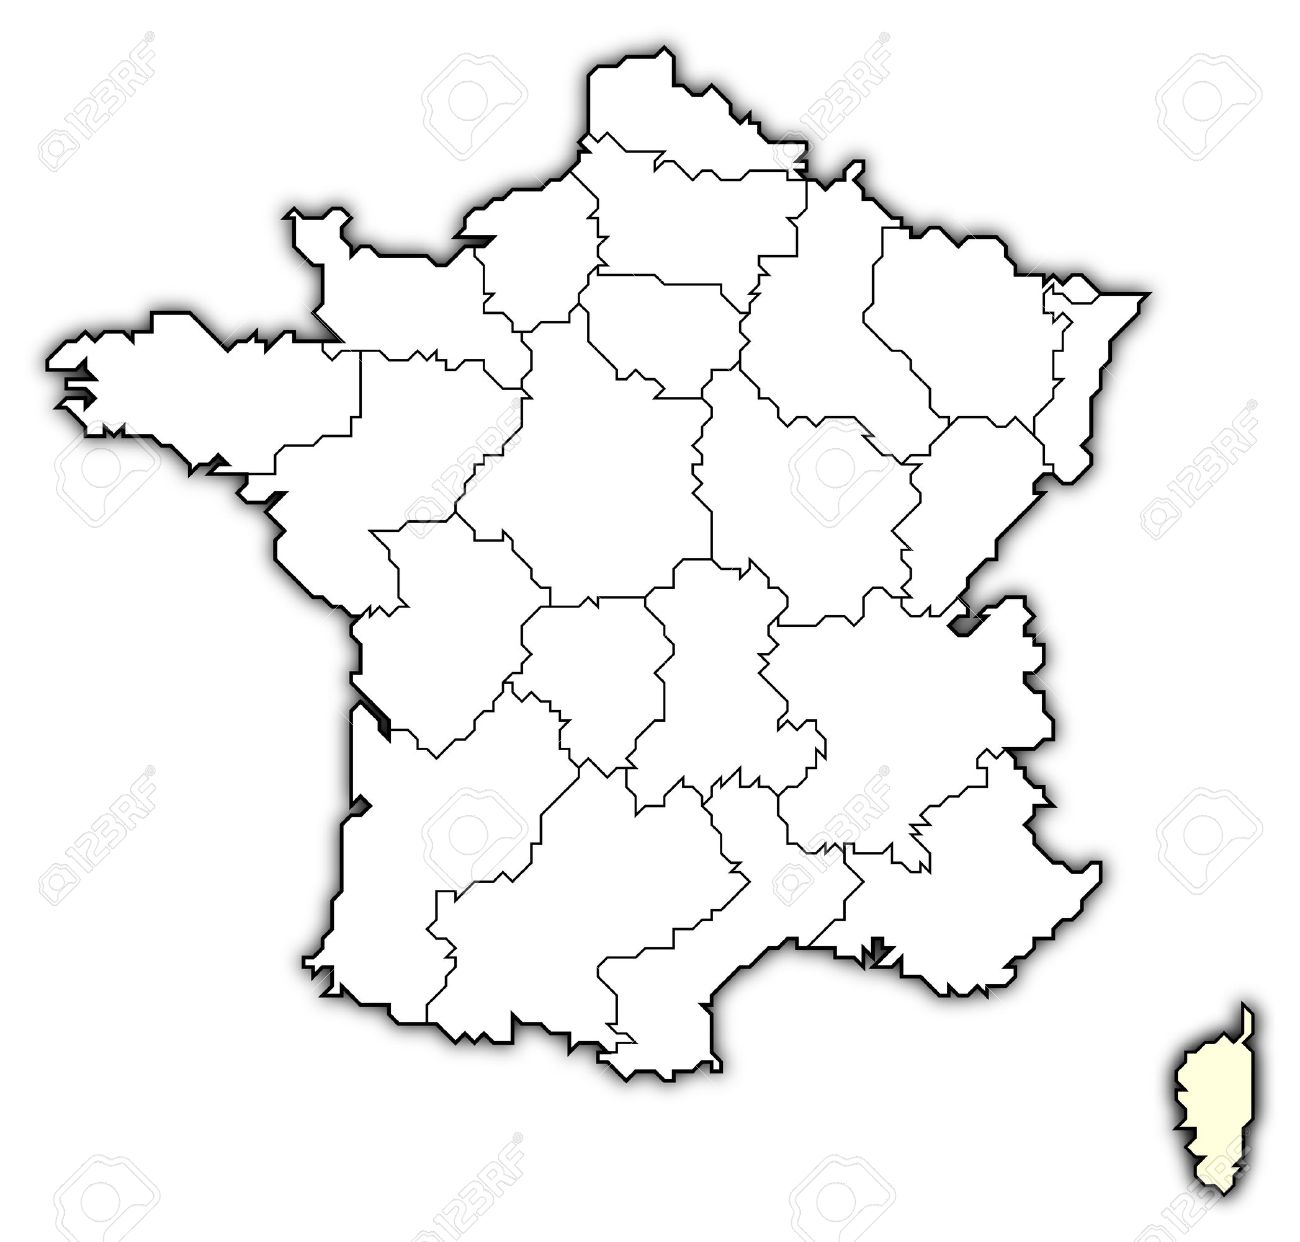 Political map of France with the several regions where Corsica is highlighted. Stock Photo - 10865016